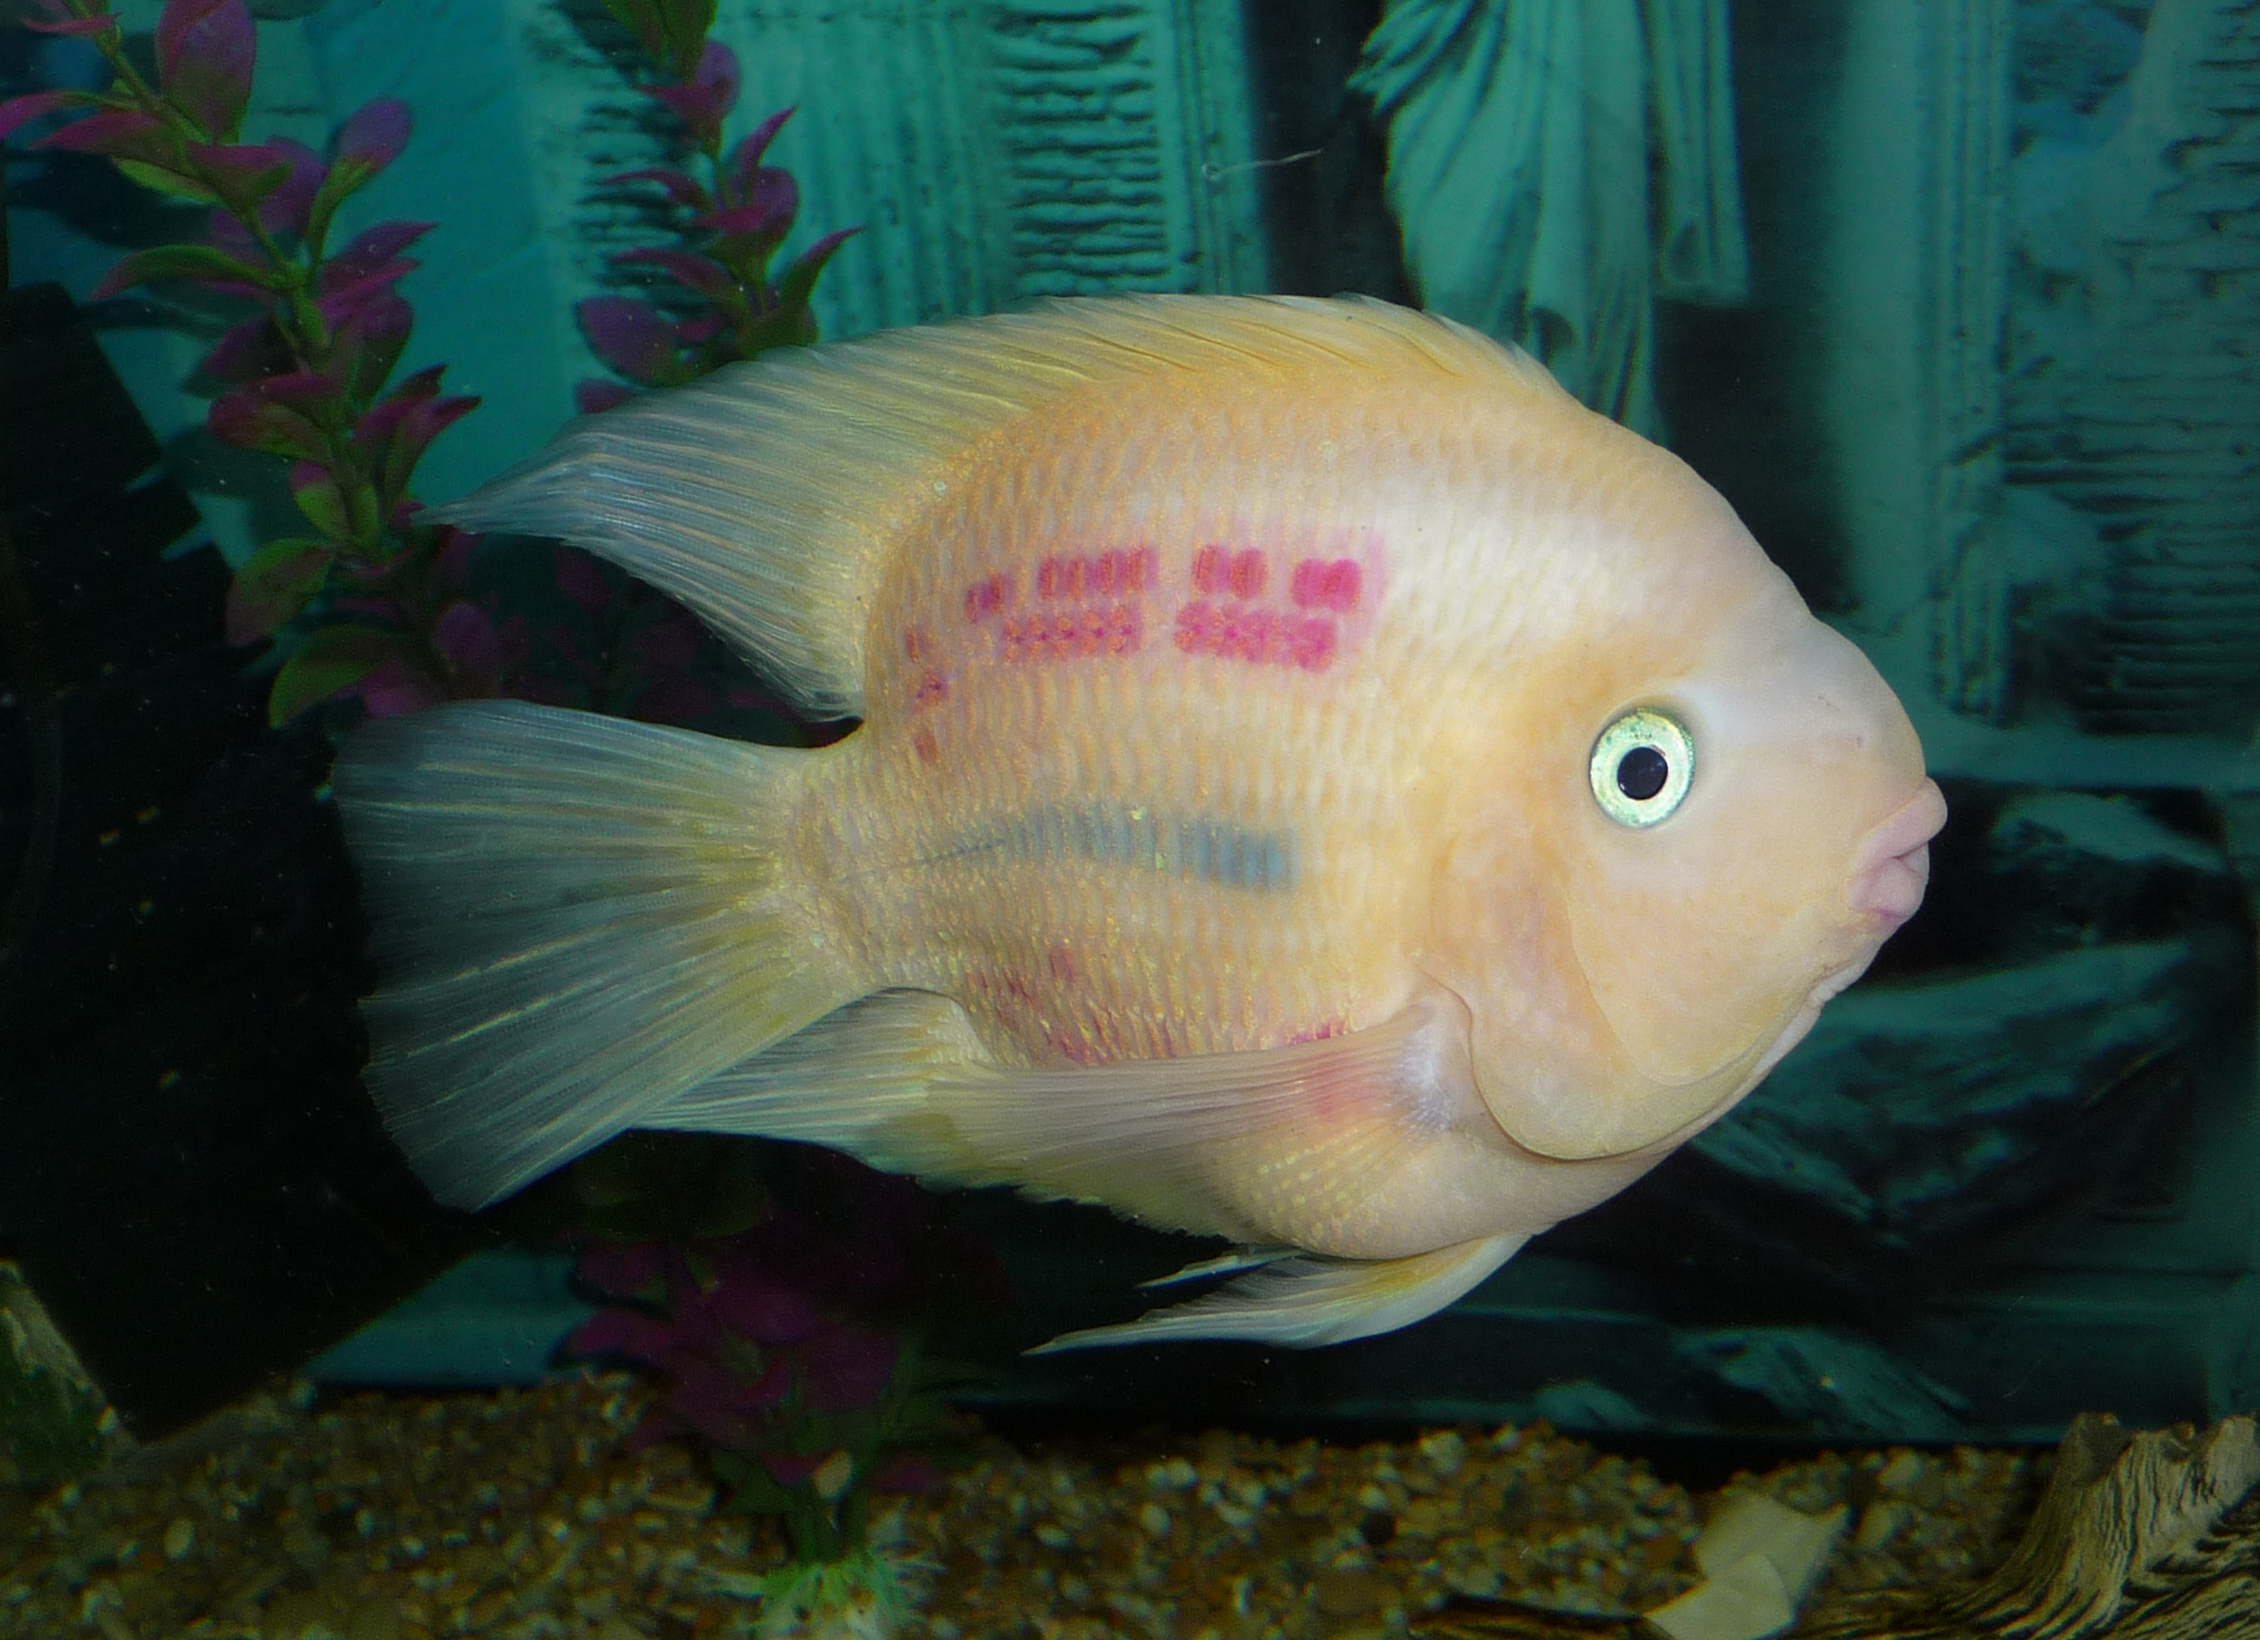 File:Blood parrot cichlid 2010 G1.JPG - Wikimedia Commons